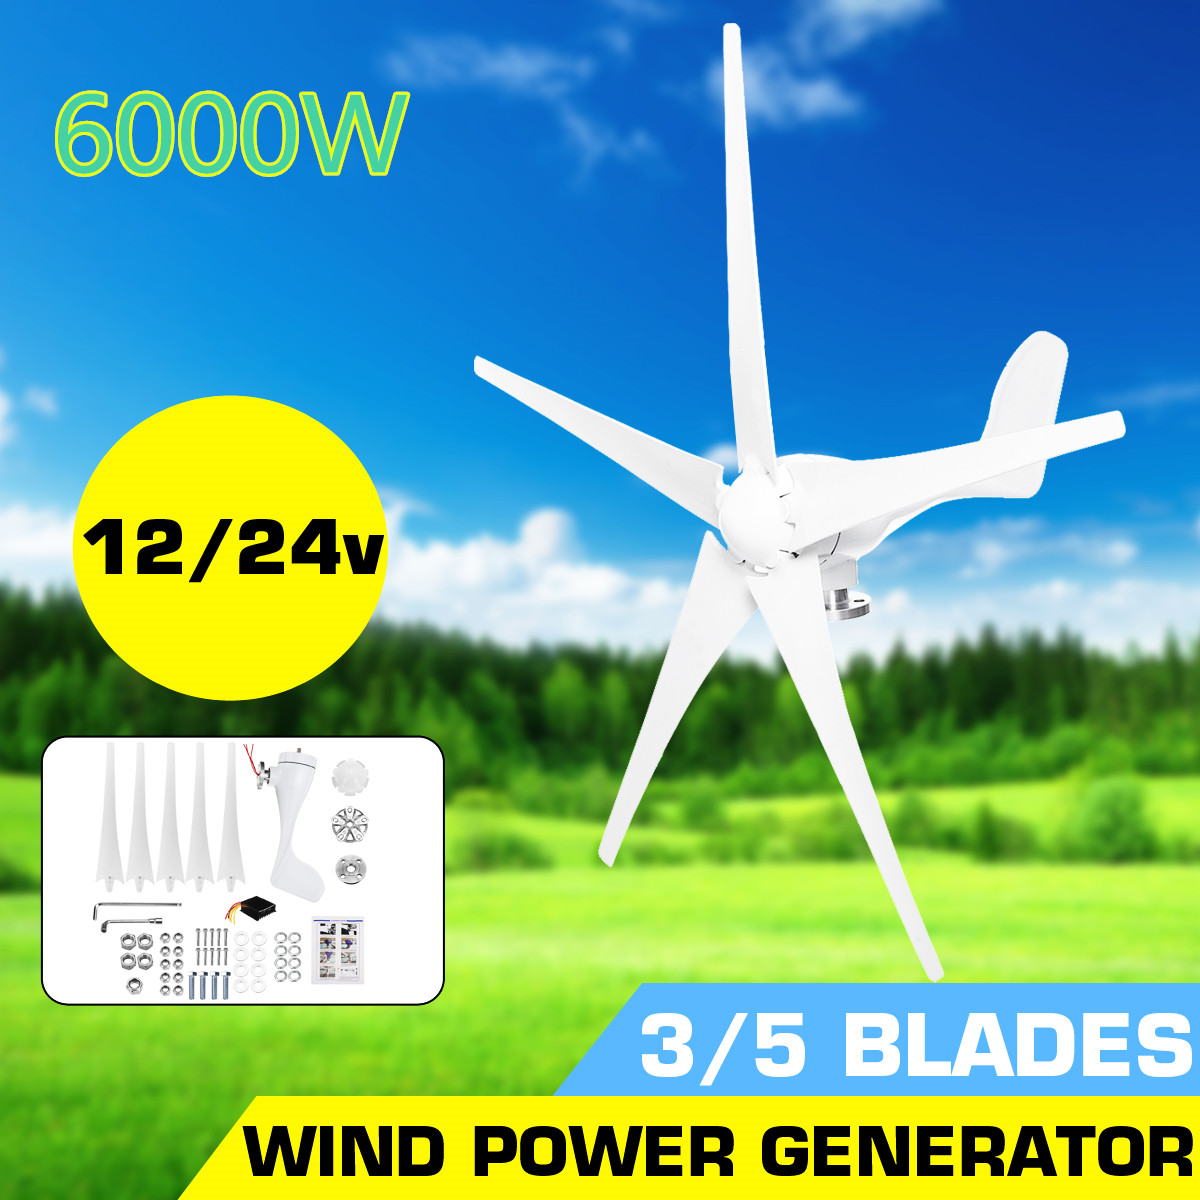 6000W 12V 24V Wind Power Turbines Generator 3/5 Wind Blades Option With Waterproof Charge Controller Fit for Home Or Camping